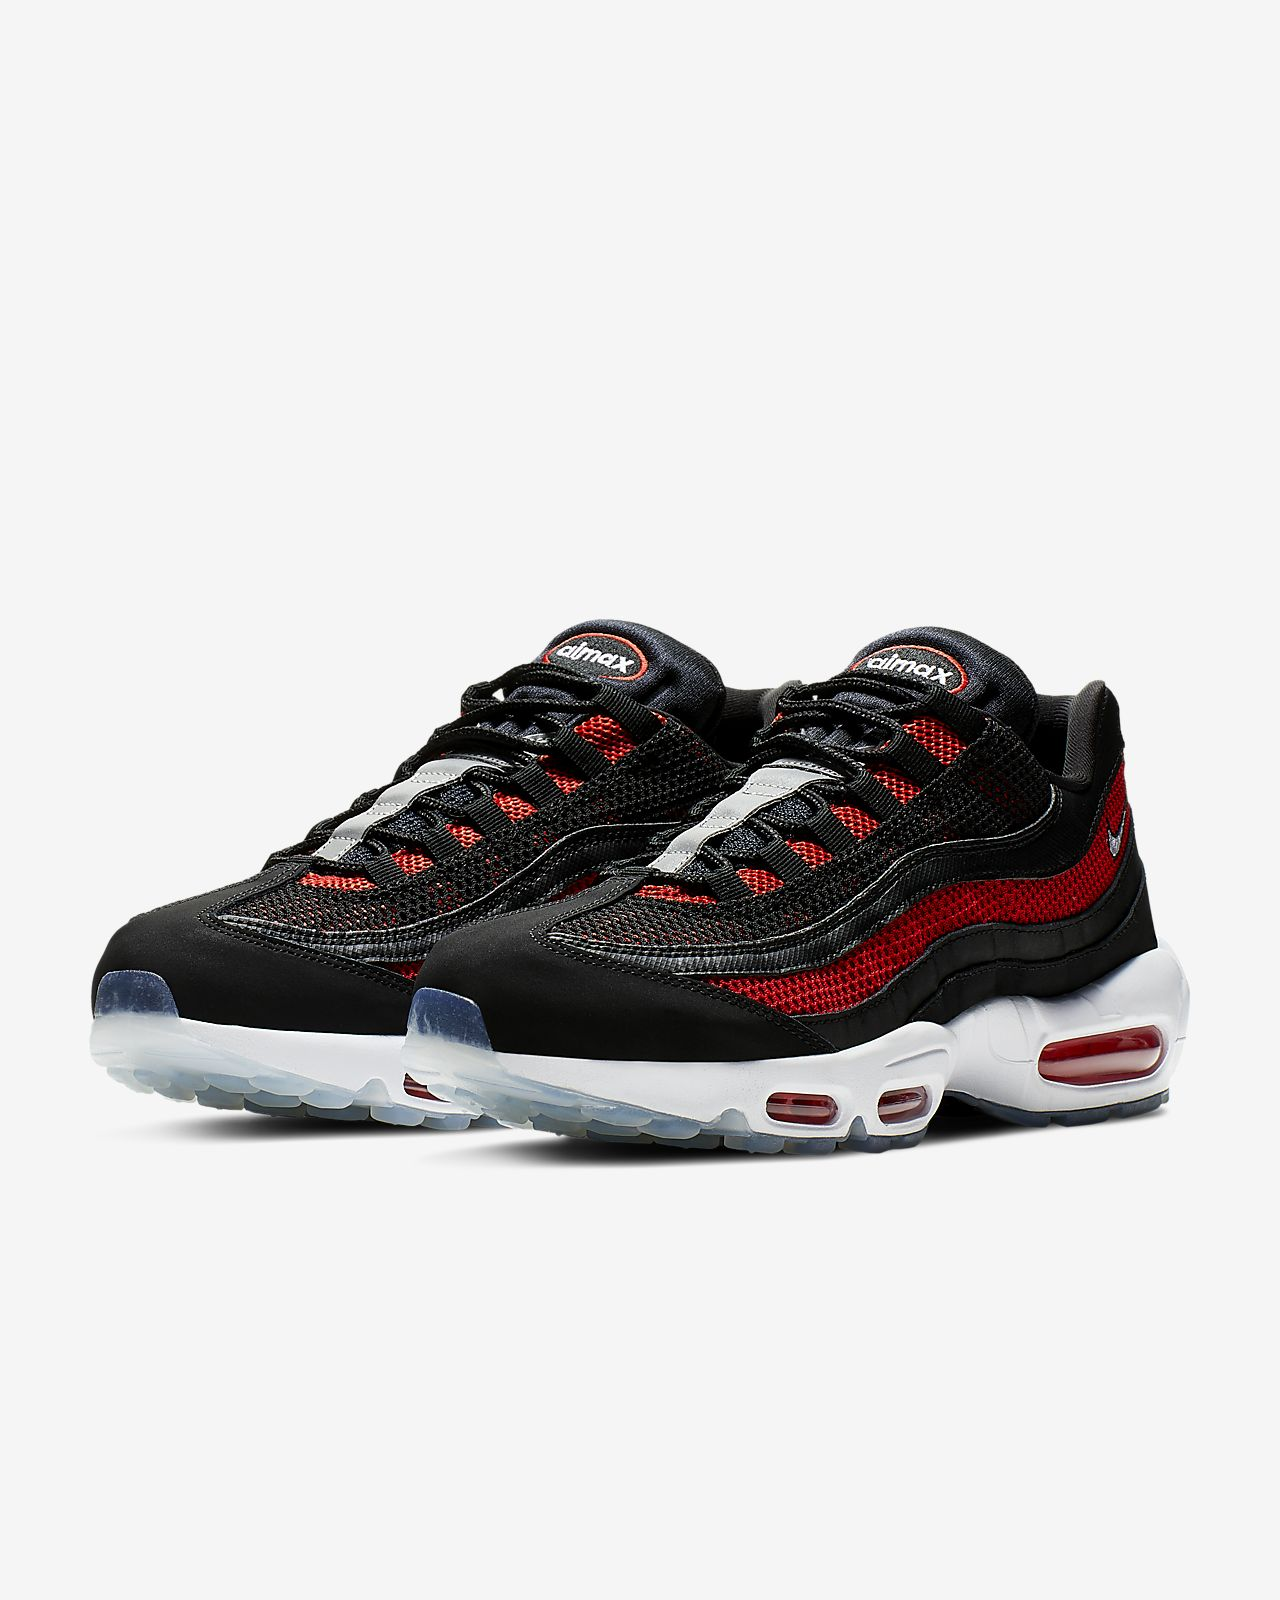 Coming Soon: Nike Air Max 95 Essential Midnight Navy